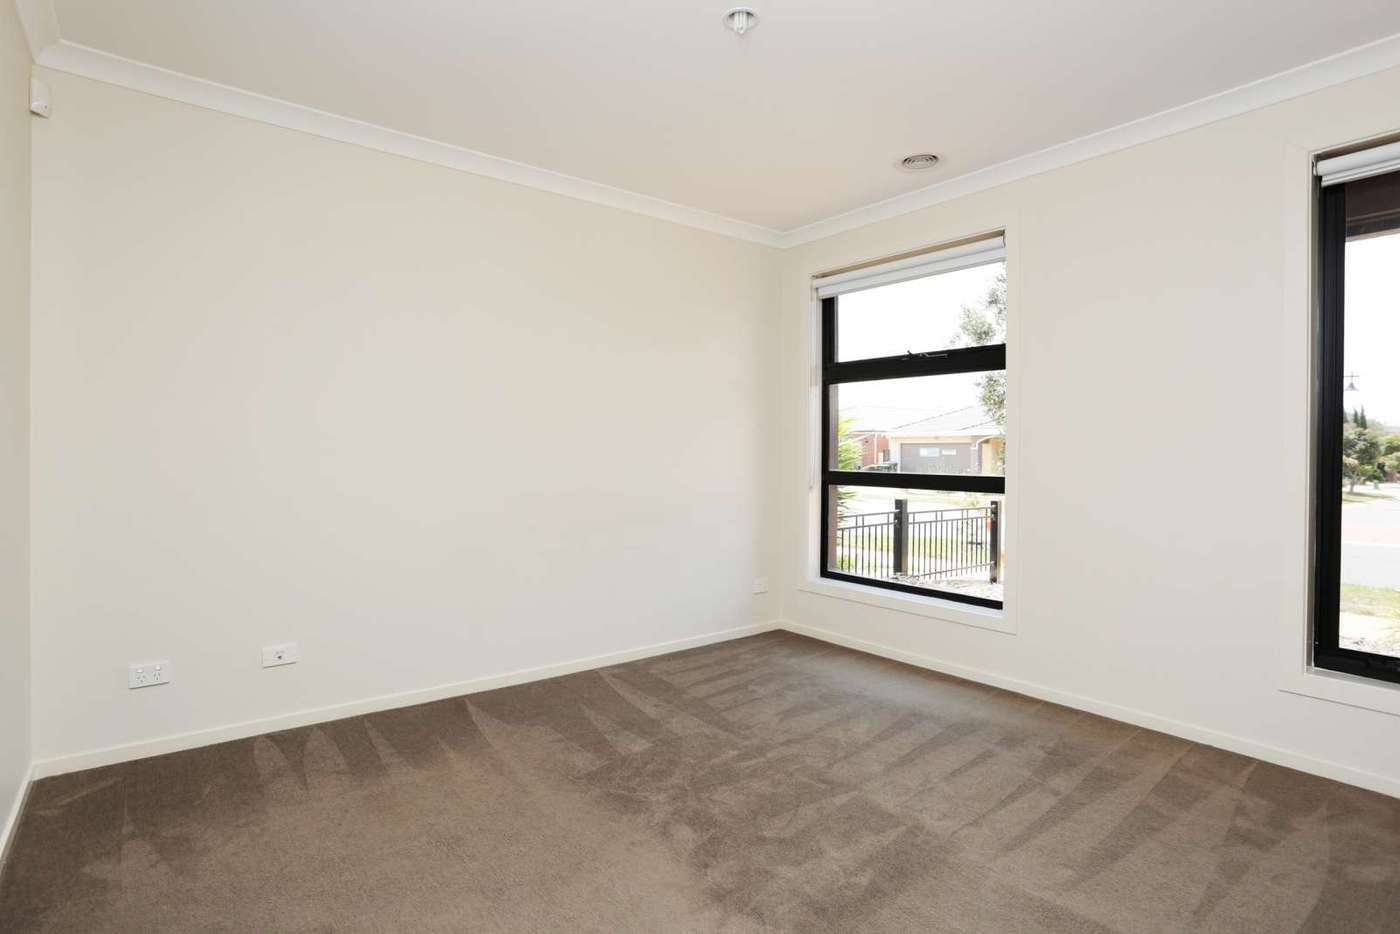 Sixth view of Homely house listing, 28 Florey Avenue, Point Cook VIC 3030